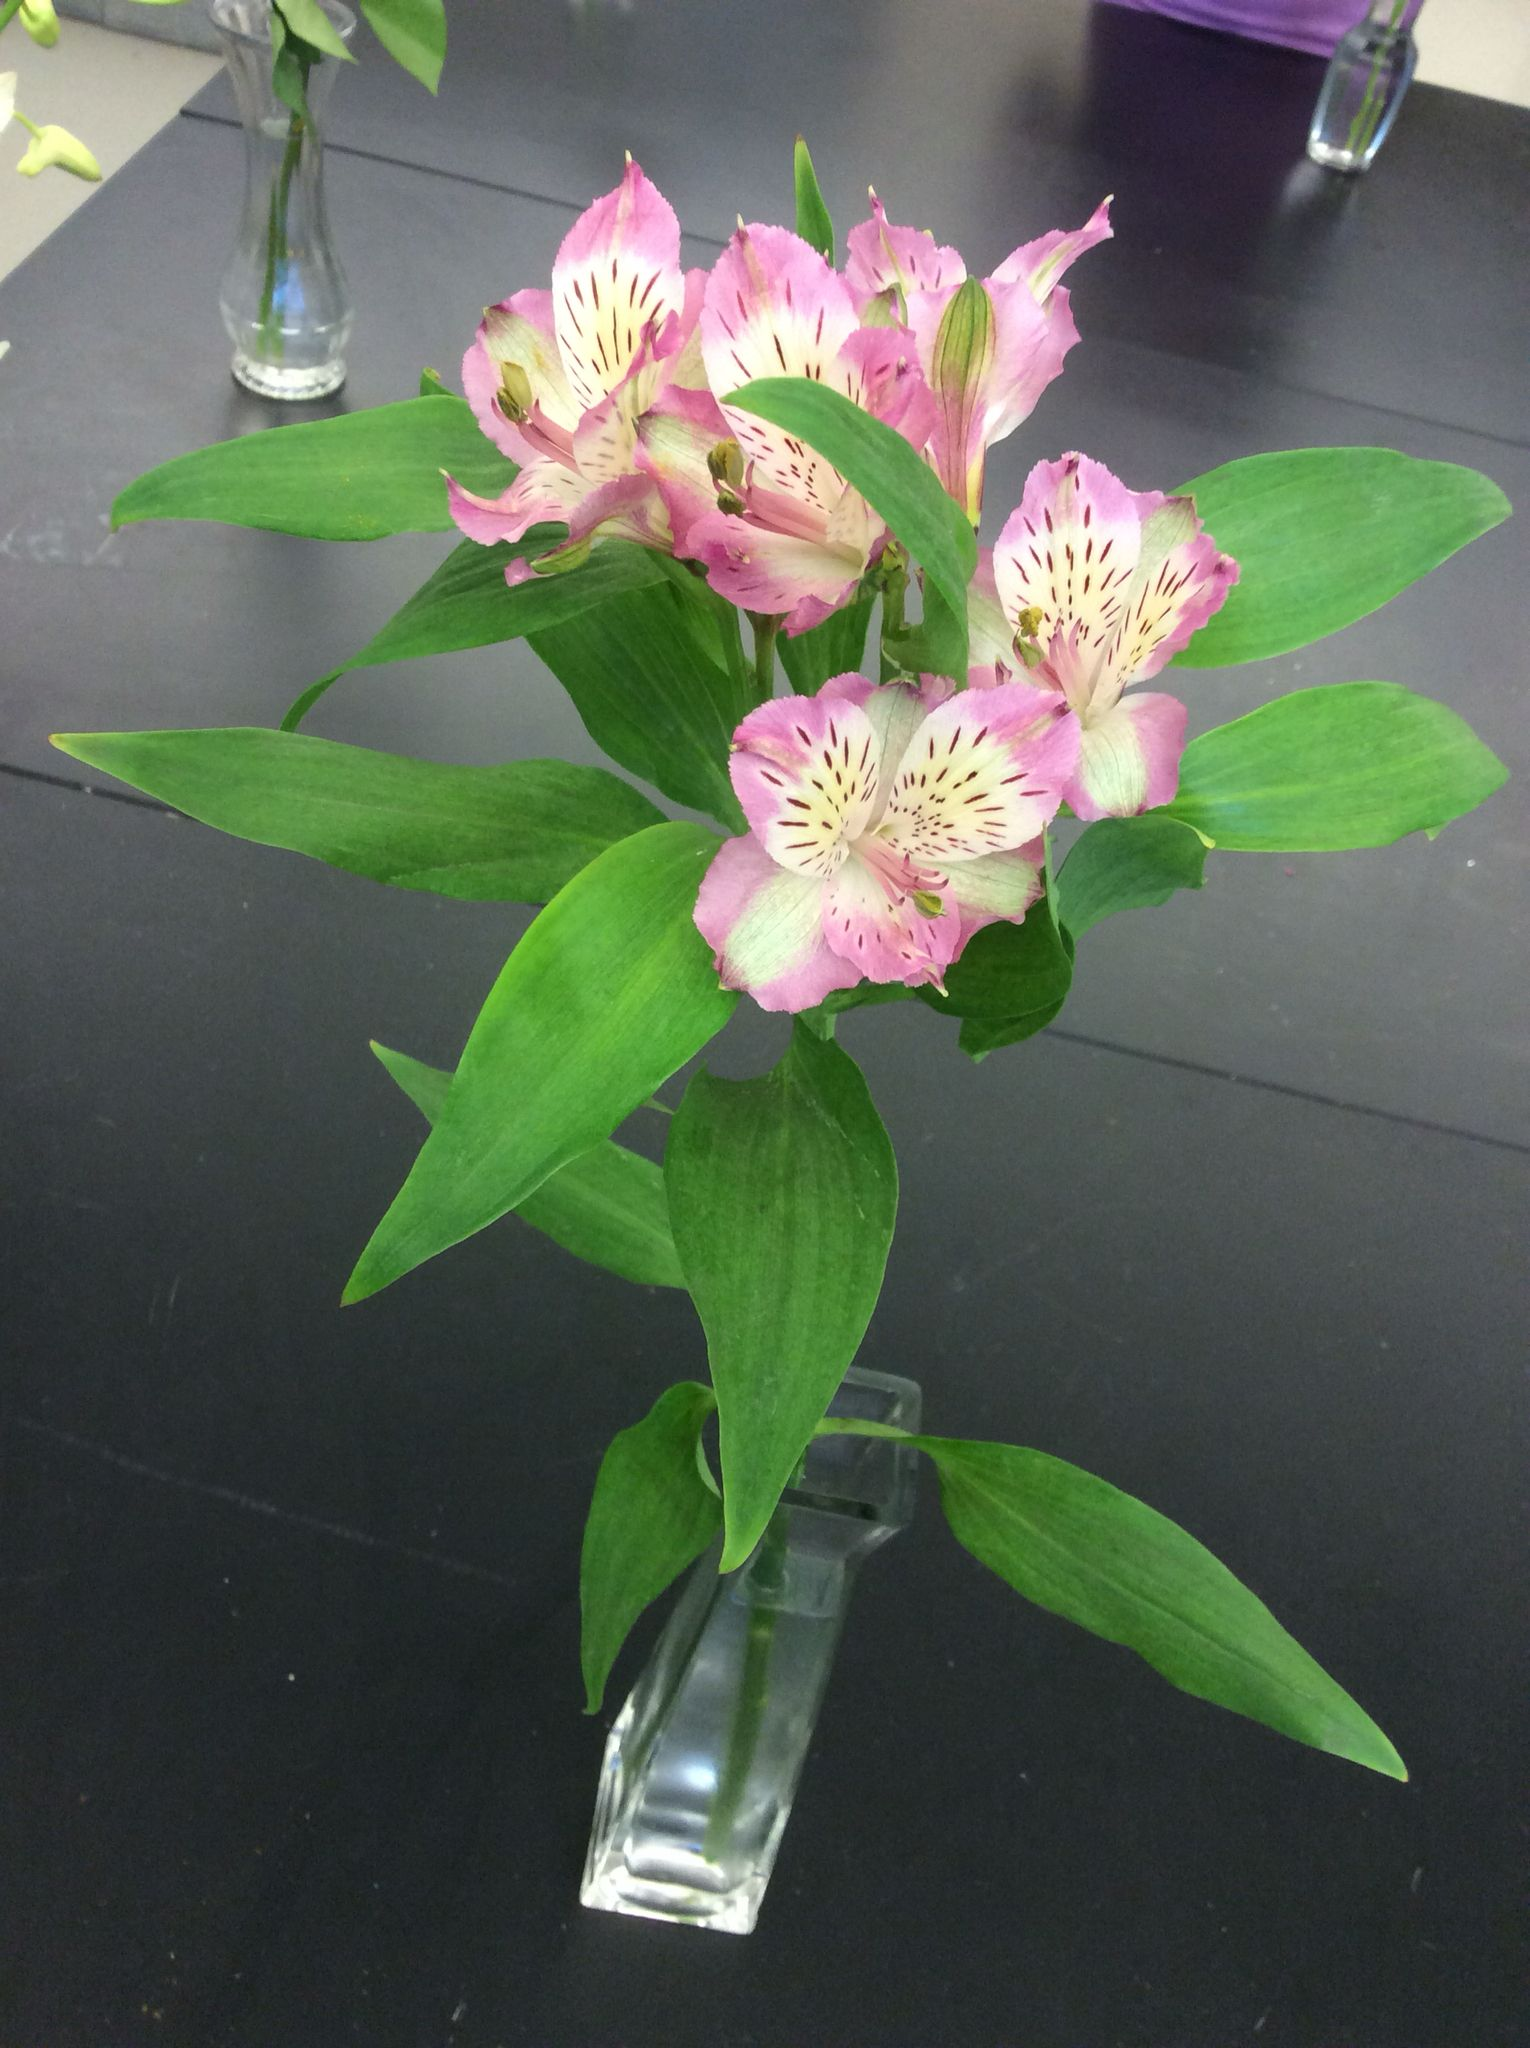 Common namealstroemeria peruvian lily inca lily lily of the incas common namealstroemeria peruvian lily inca lily lily of the incas scientific name alstroemeria availability year round description umbel like clusters izmirmasajfo